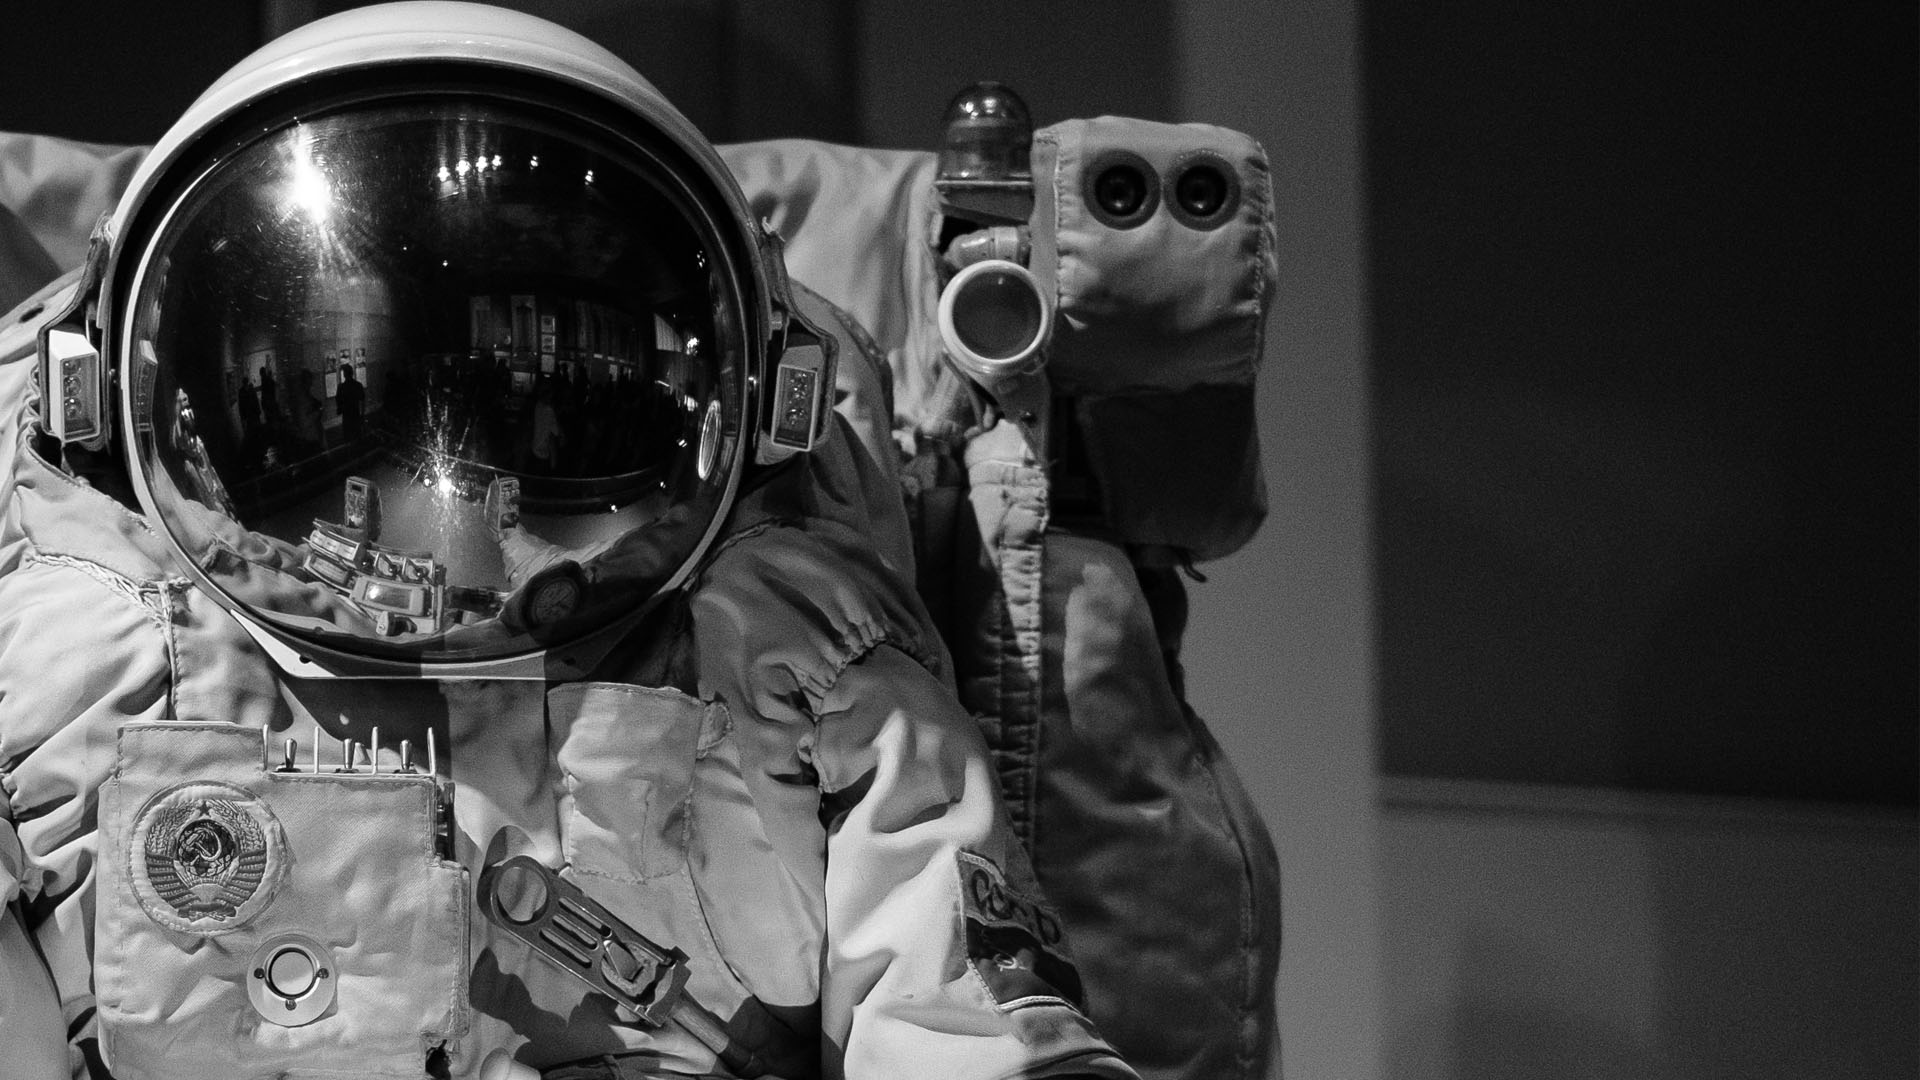 Black and white image of space suit.